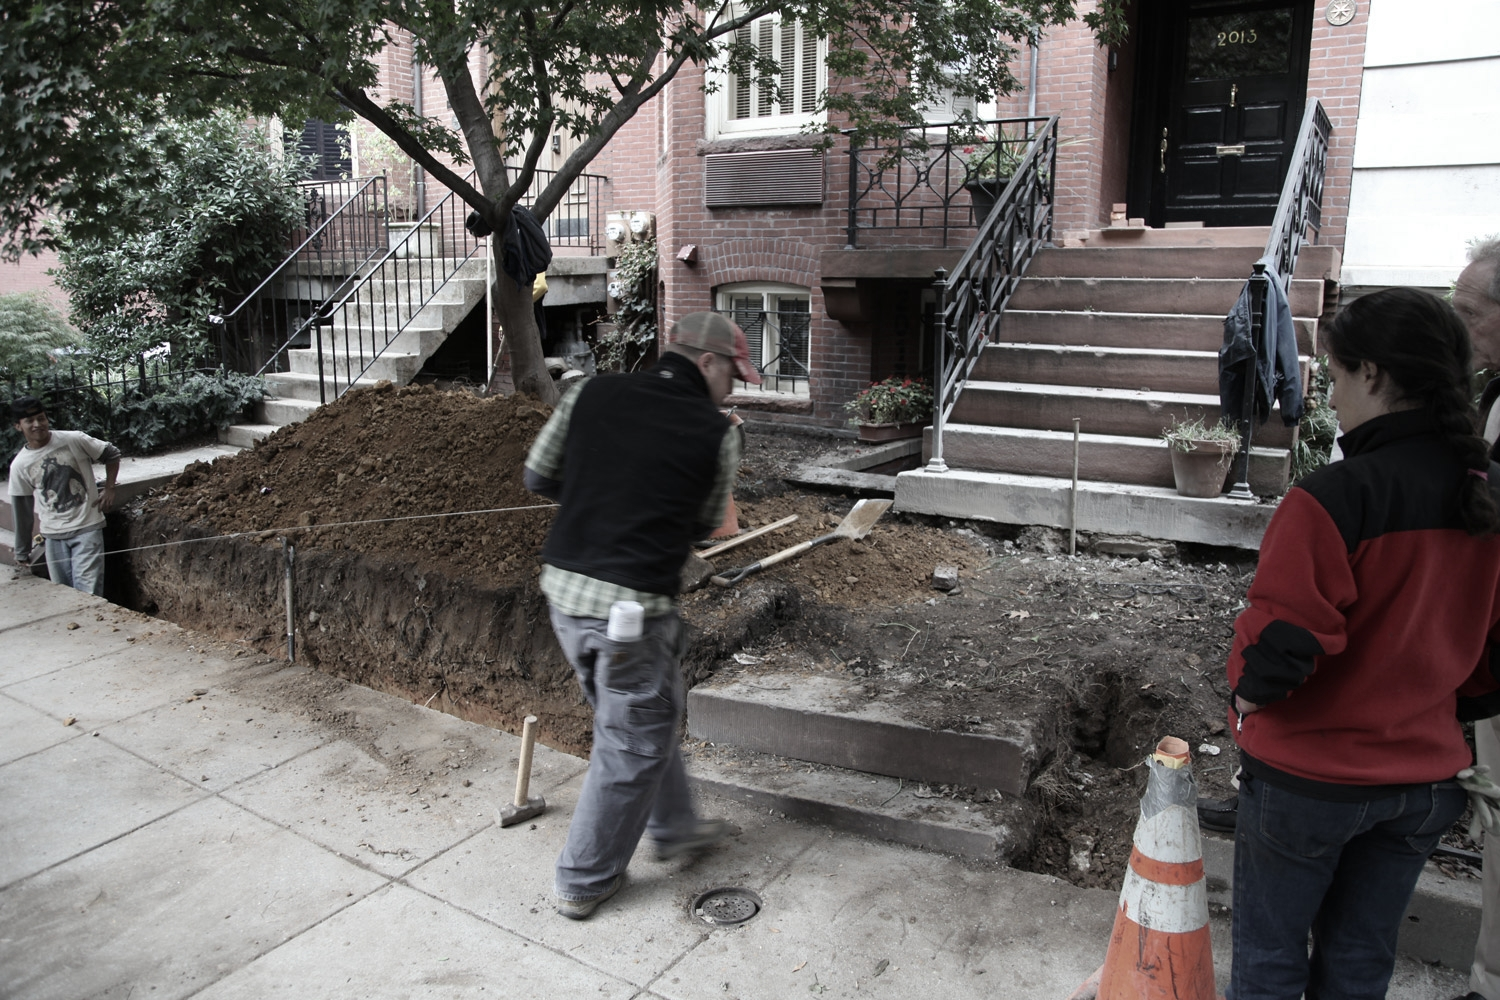 Front garden demolition and preparation for new brick retaining wall, new metal fence, new stone cheek walls, new custom handrail to match historic finials, and new stone step to match historic brownstone